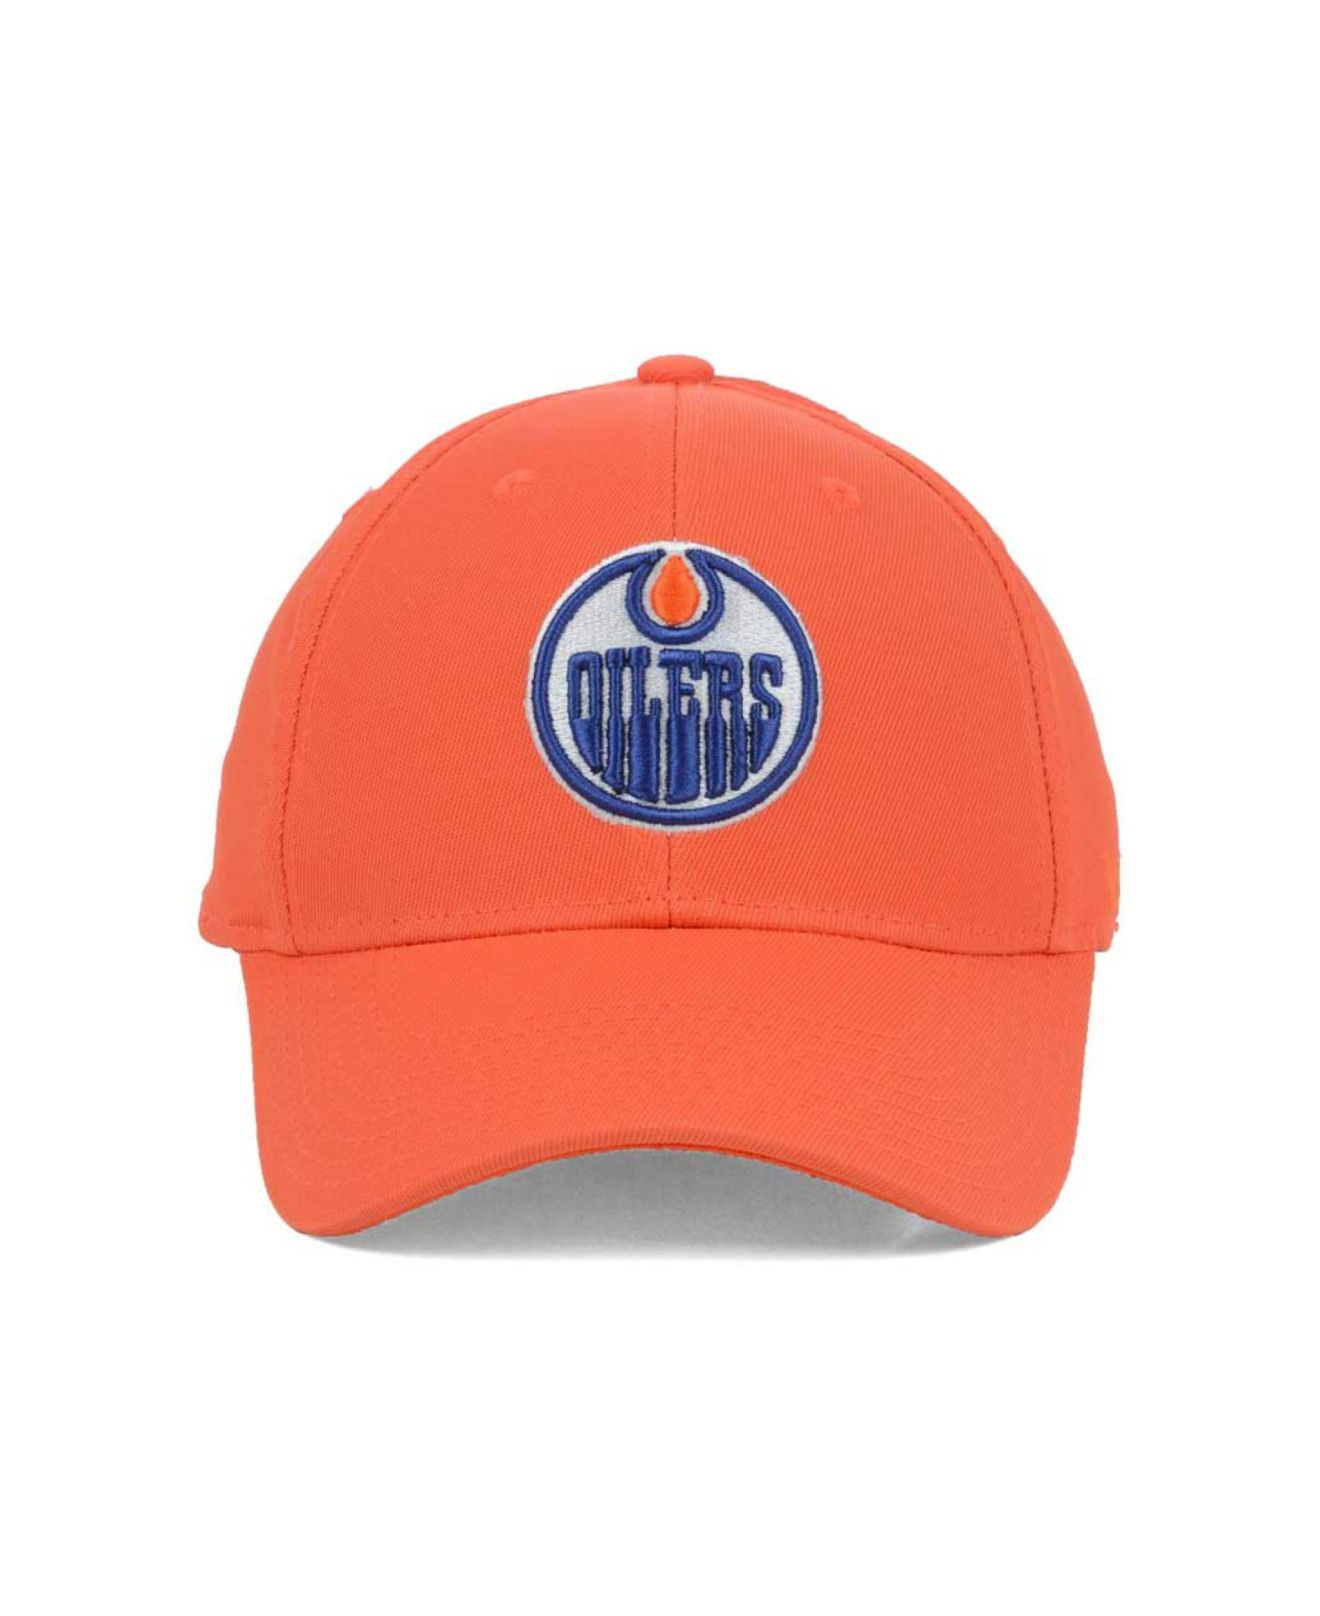 Lyst - Reebok Edmonton Oilers Hat Trick Cap in Orange for Men 57005d81af1